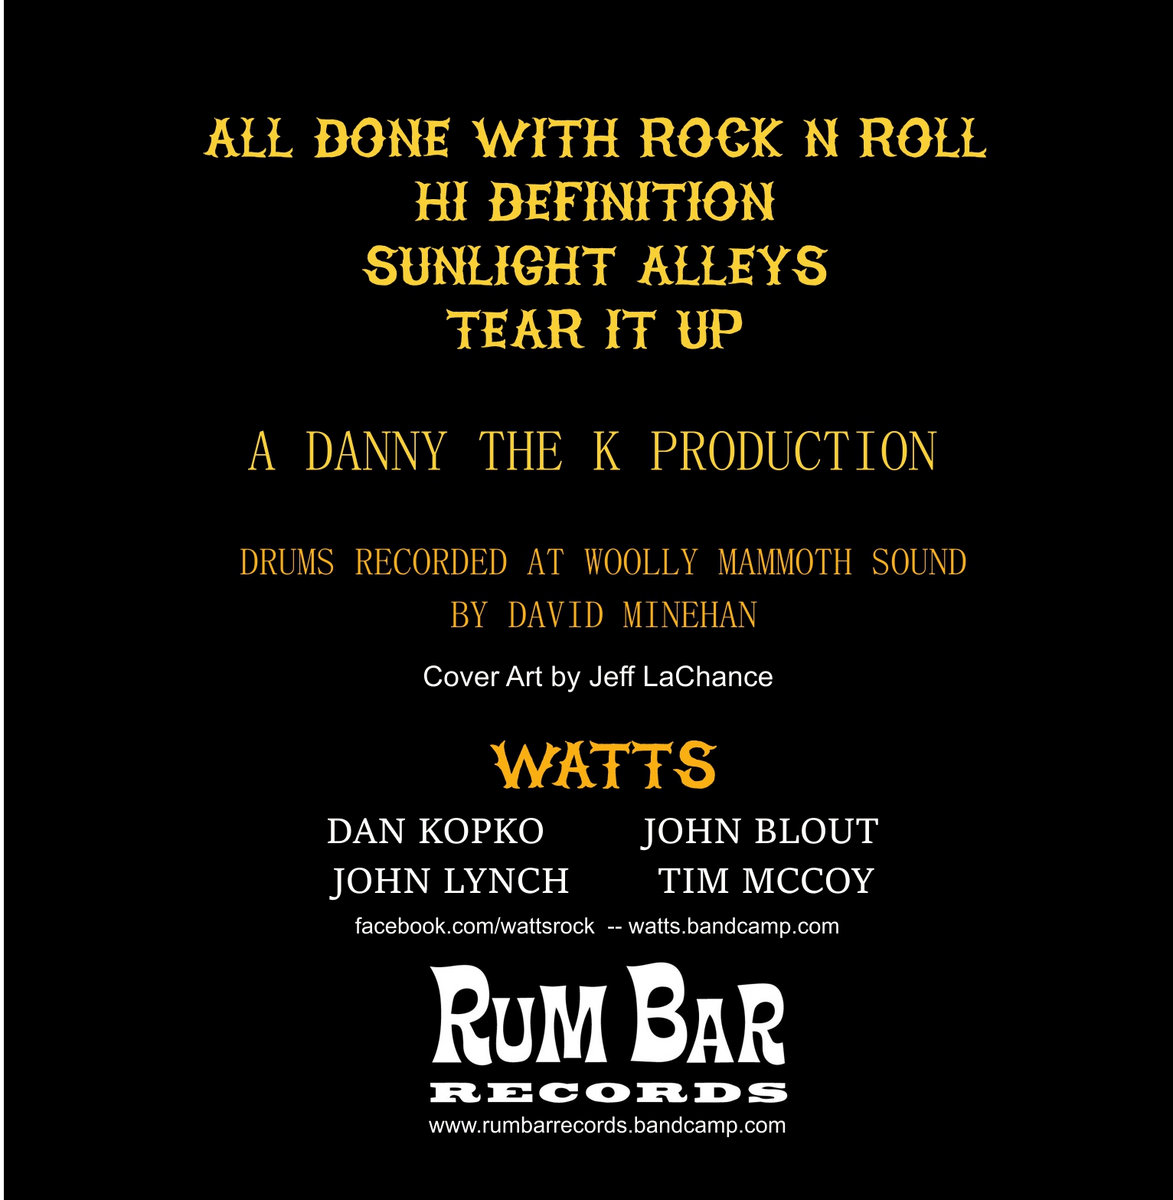 all done with rock n roll | rum bar records